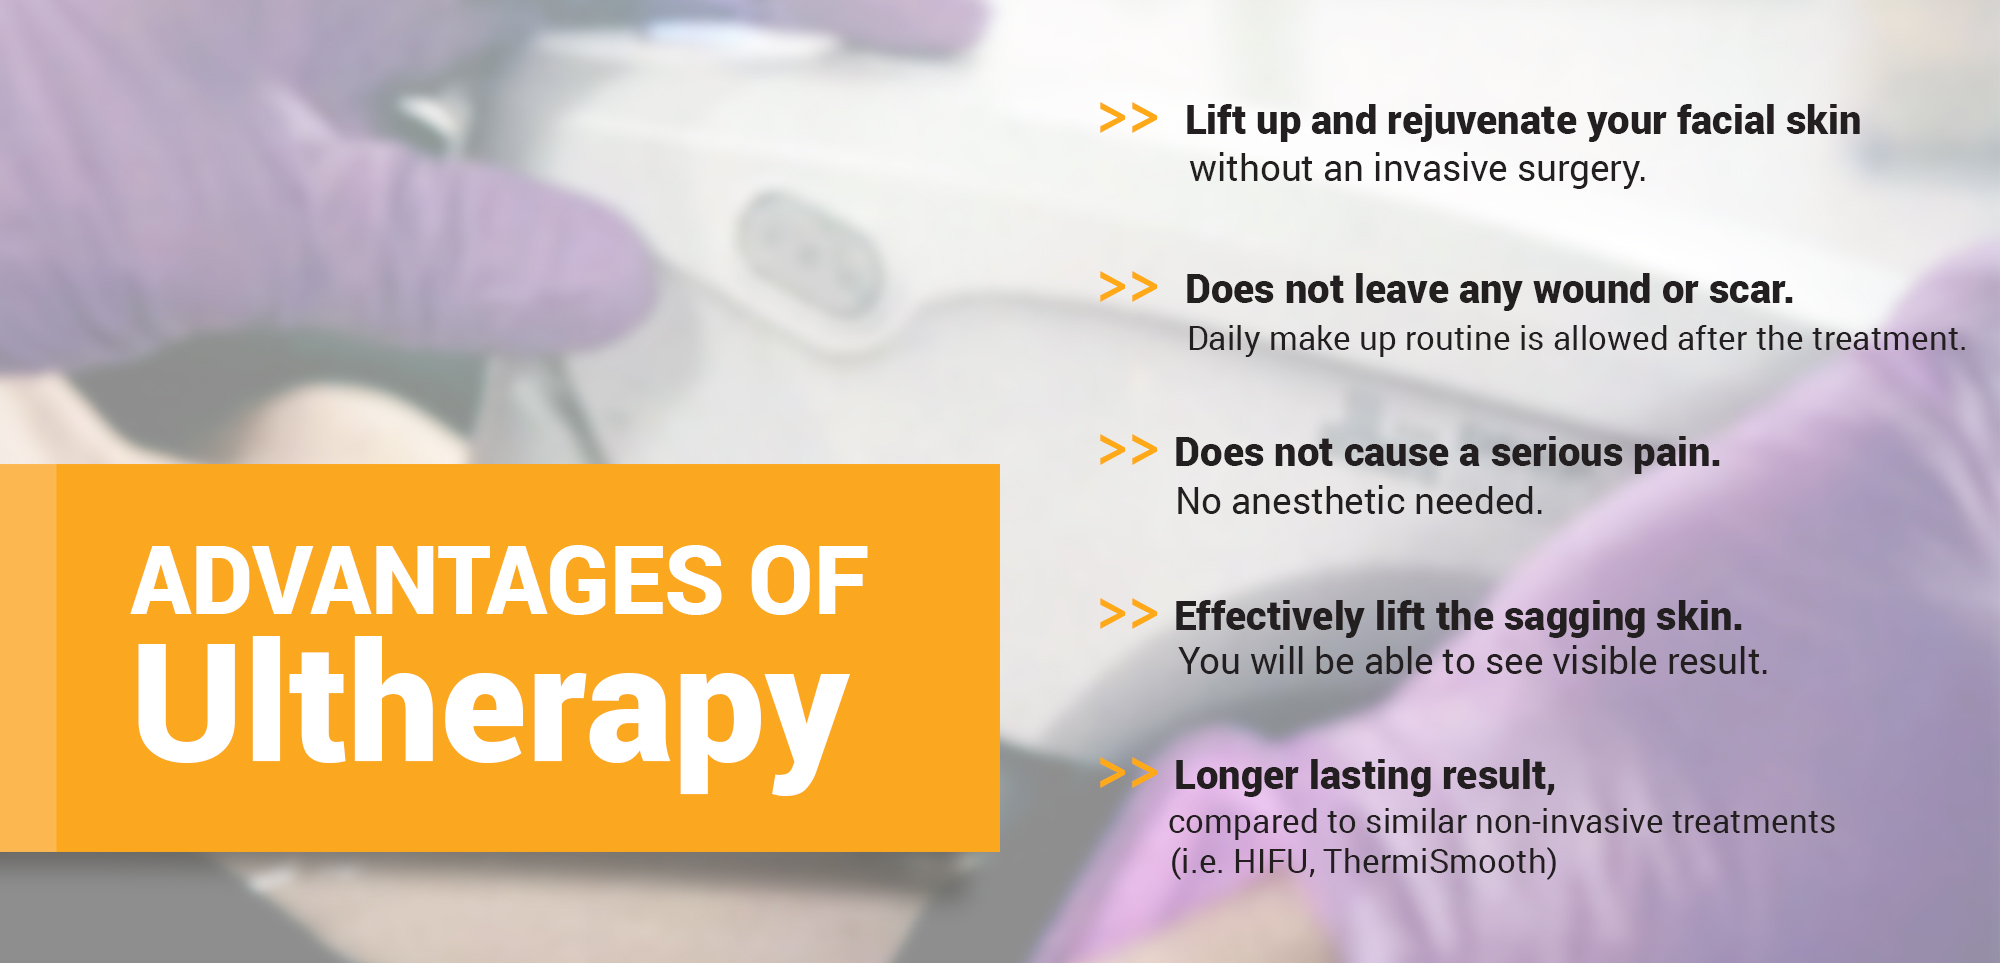 Adventages of Ultherapy